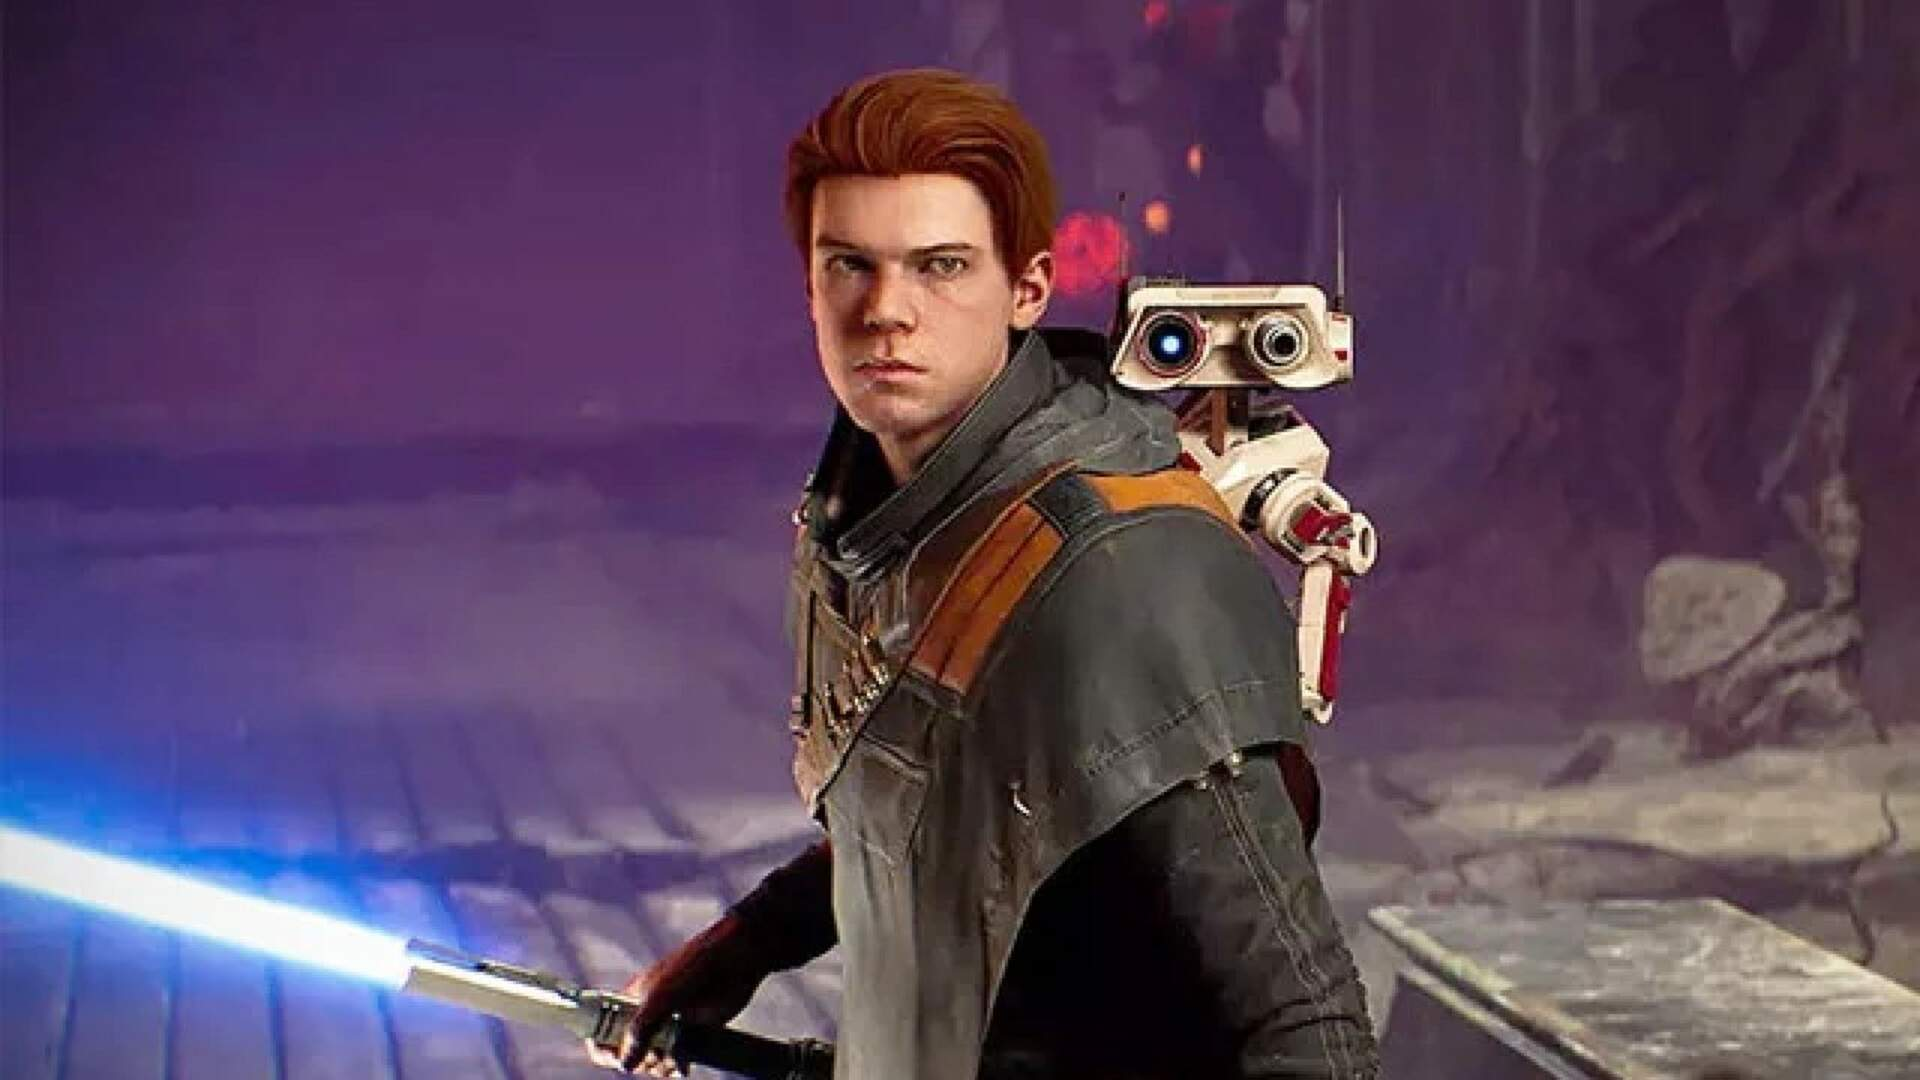 In Defense of Cal Kestis, Jedi: Fallen Order's Dorkiest Padawan